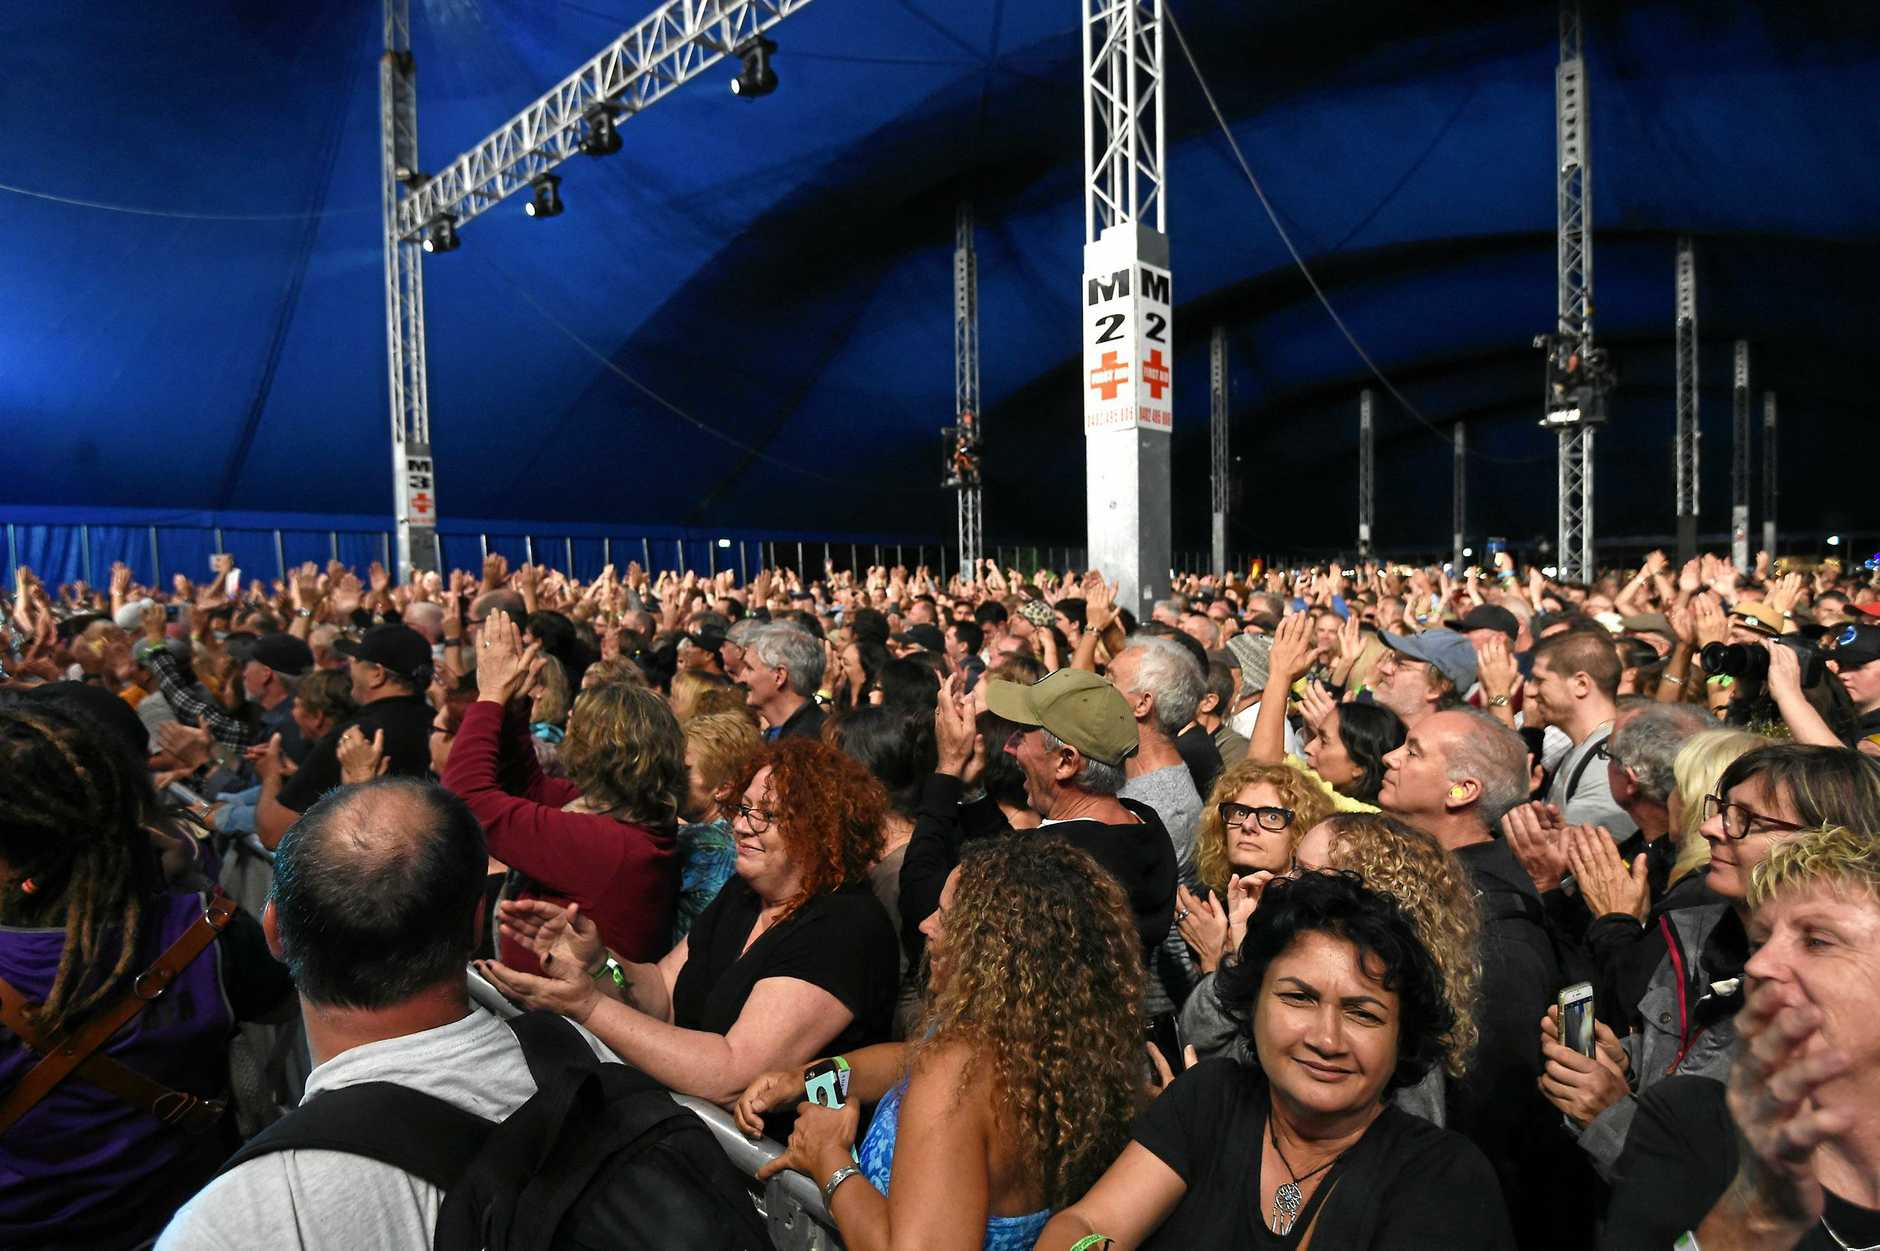 The crowd watches The Doobie Brothers at Bluesfest.